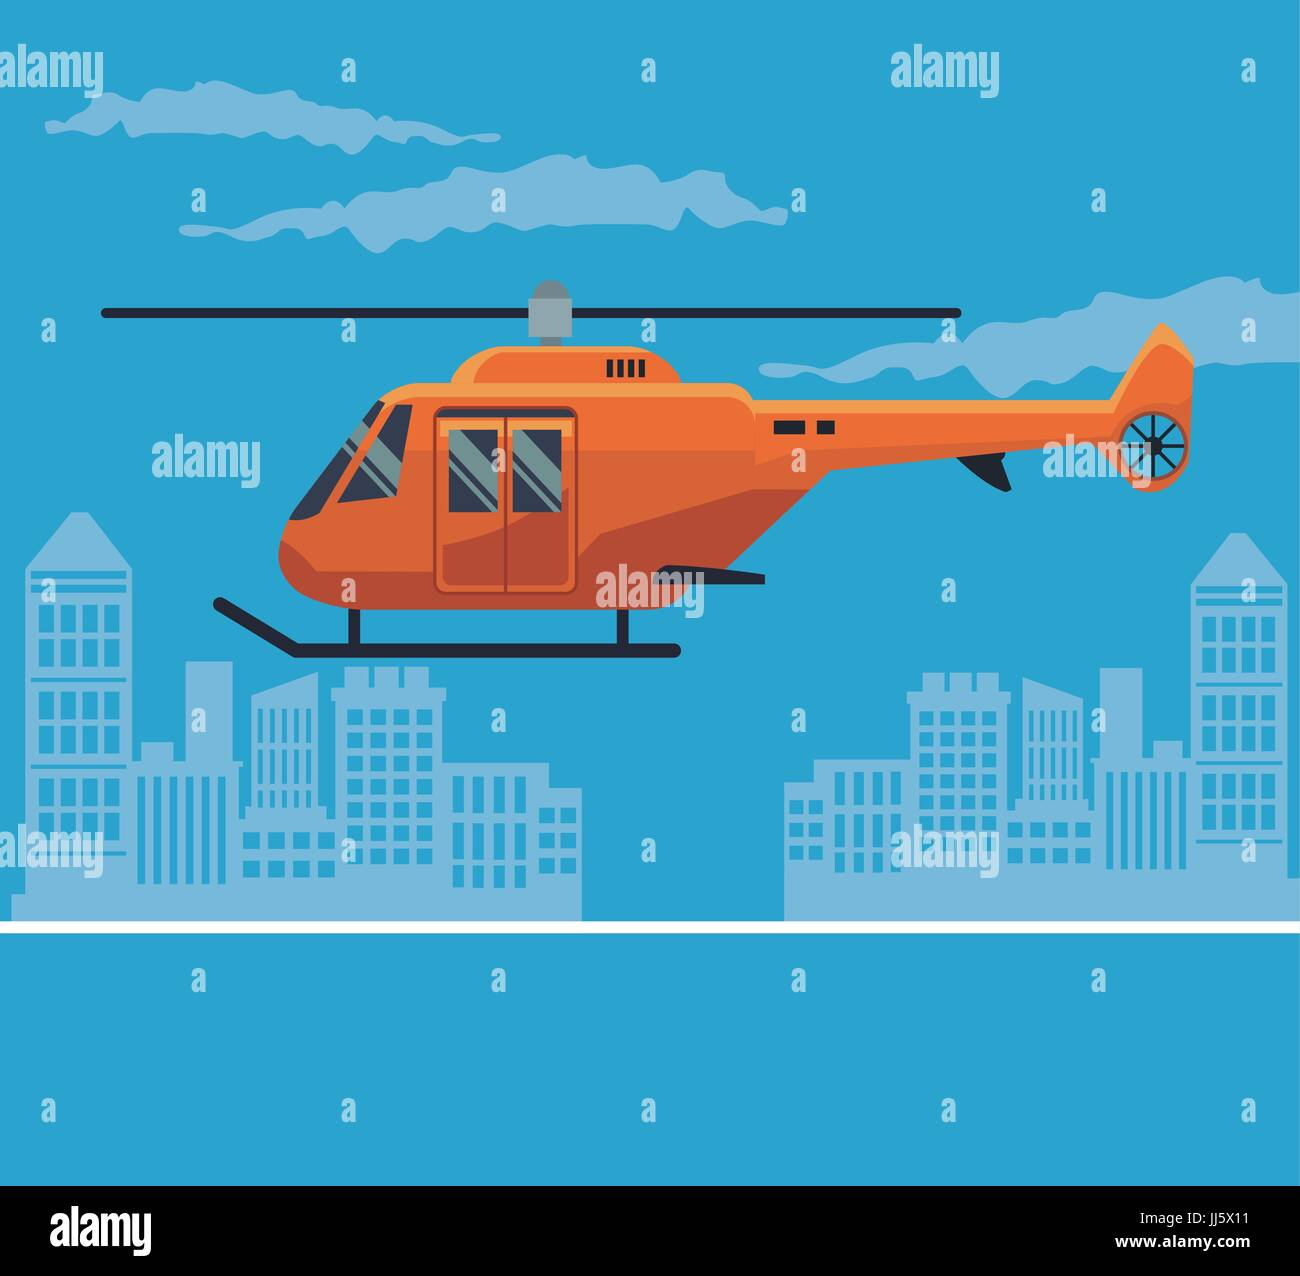 color poster city landscape with helicopter in flight - Stock Image